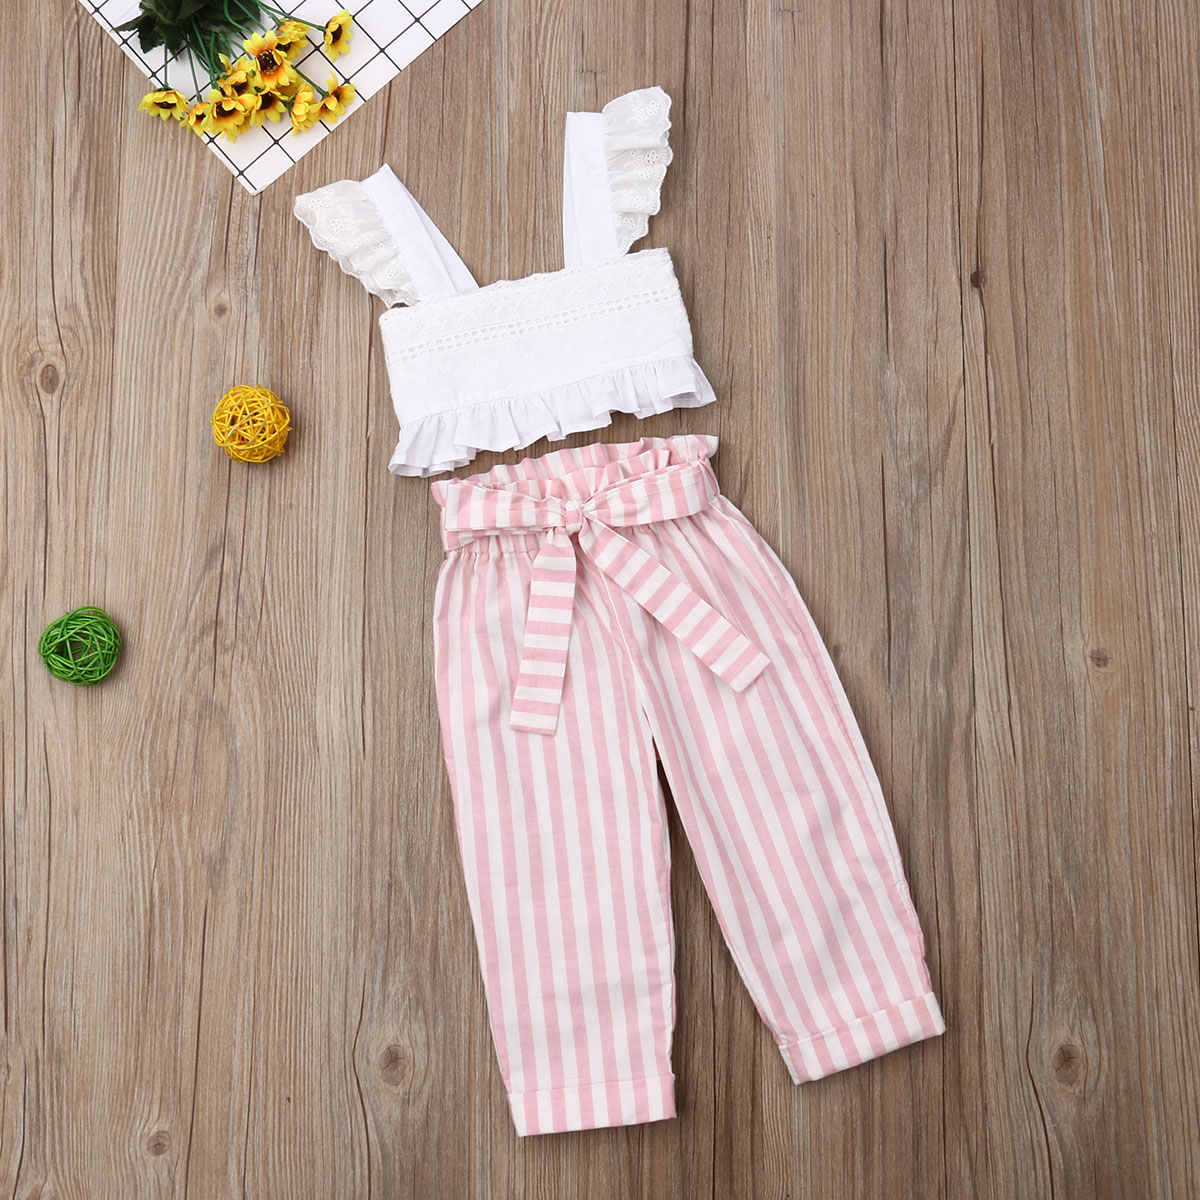 Pudcoco Summer Toddler Baby Girl Clothes Lace Strap Ruffle Crop Tops Striped Long Pants 2Pcs Outfits Clothes Summer